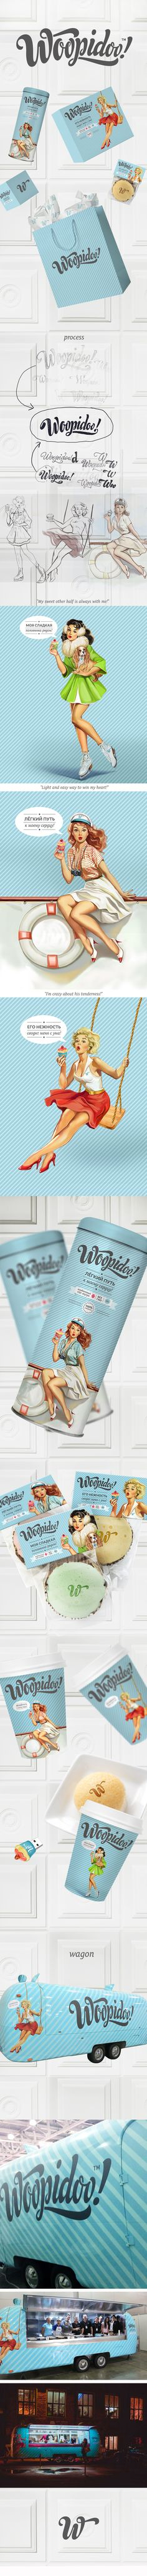 Woopidoo on Behance